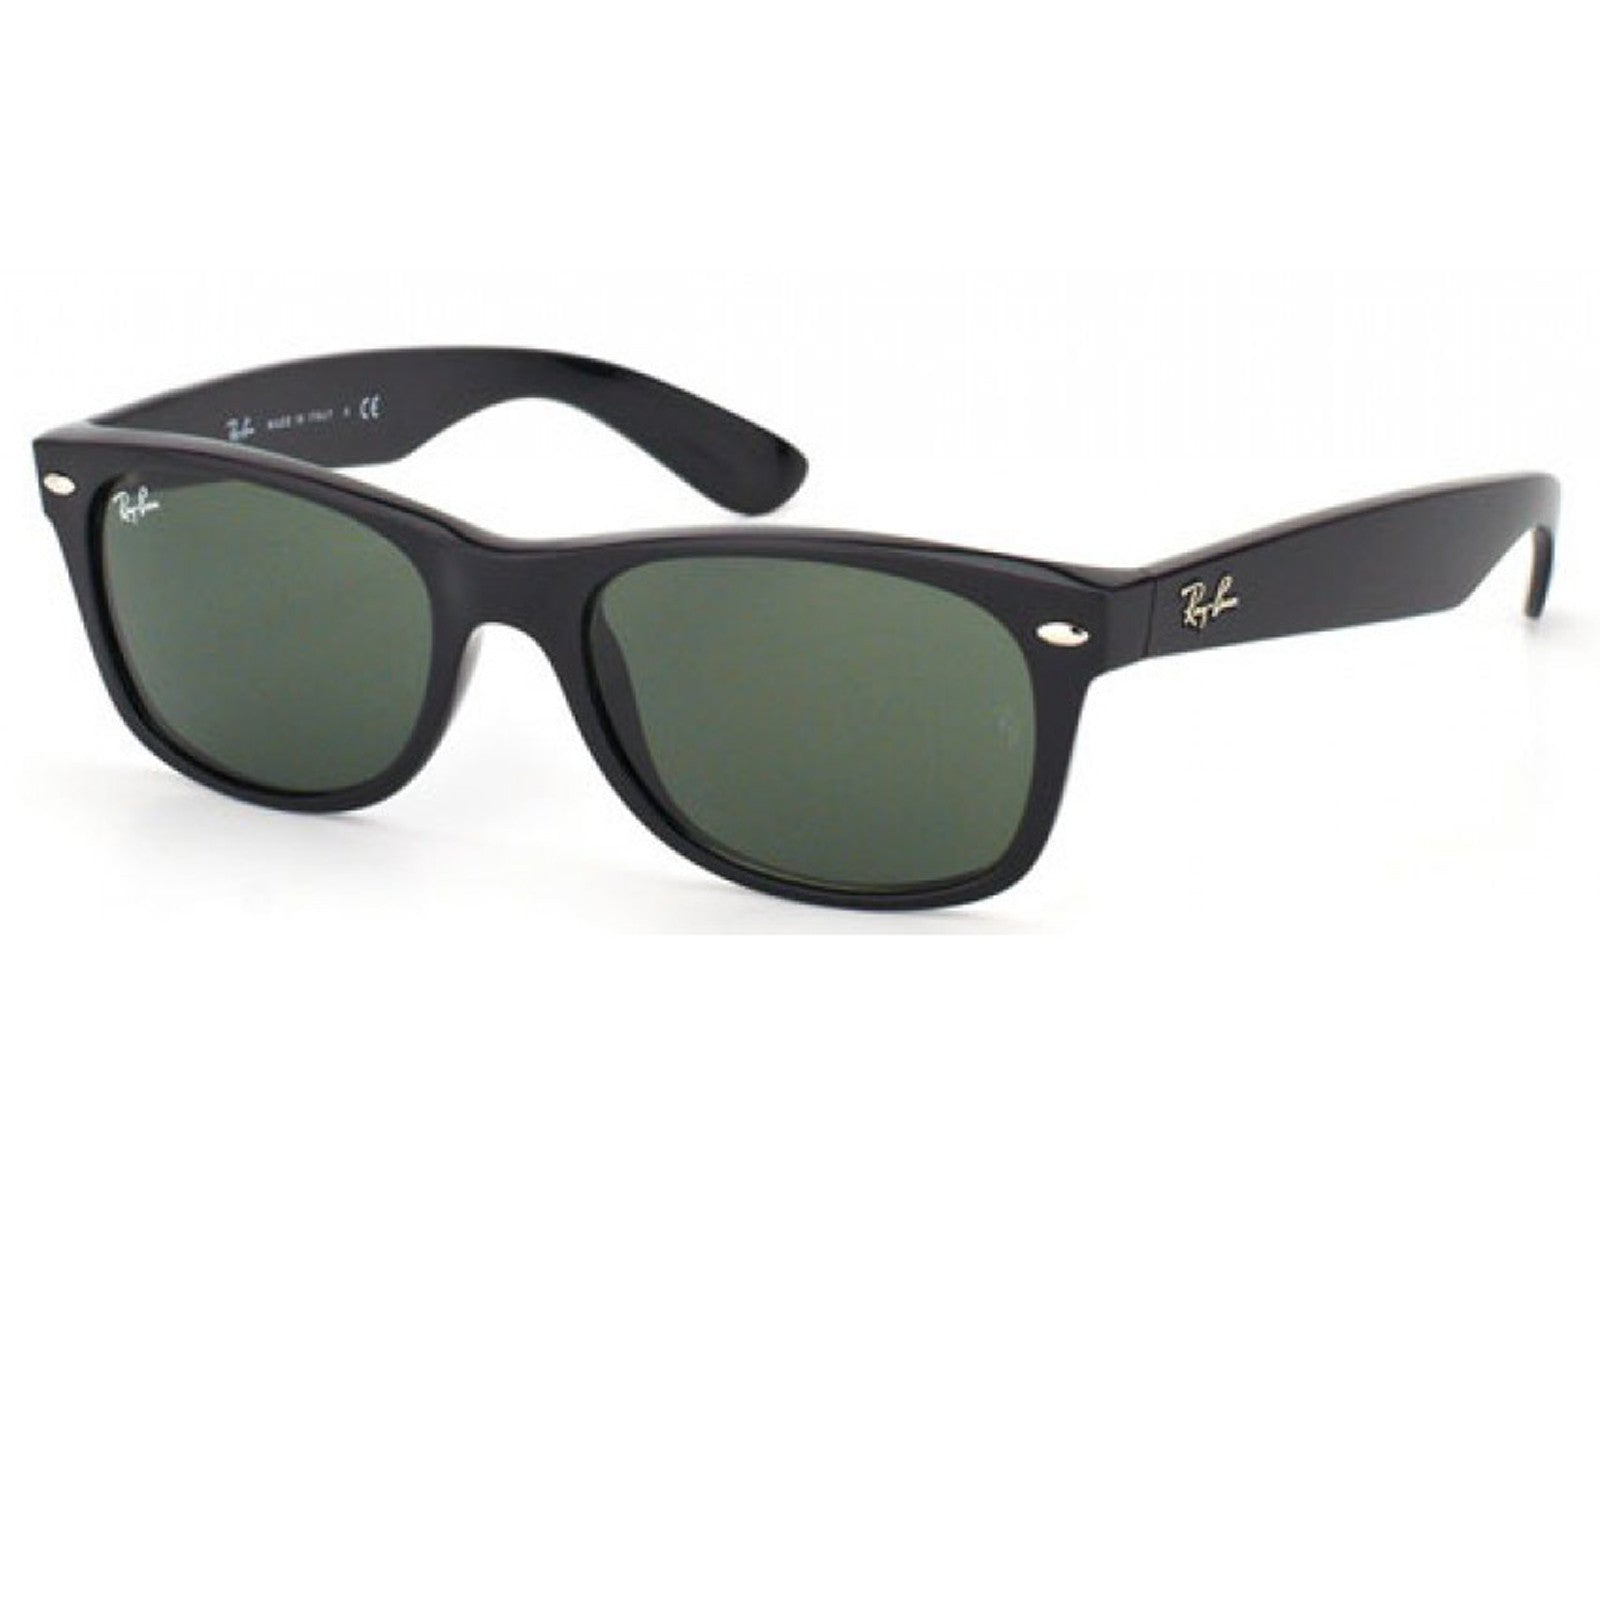 Ray-ban New Wayfarer RB2132 - 902